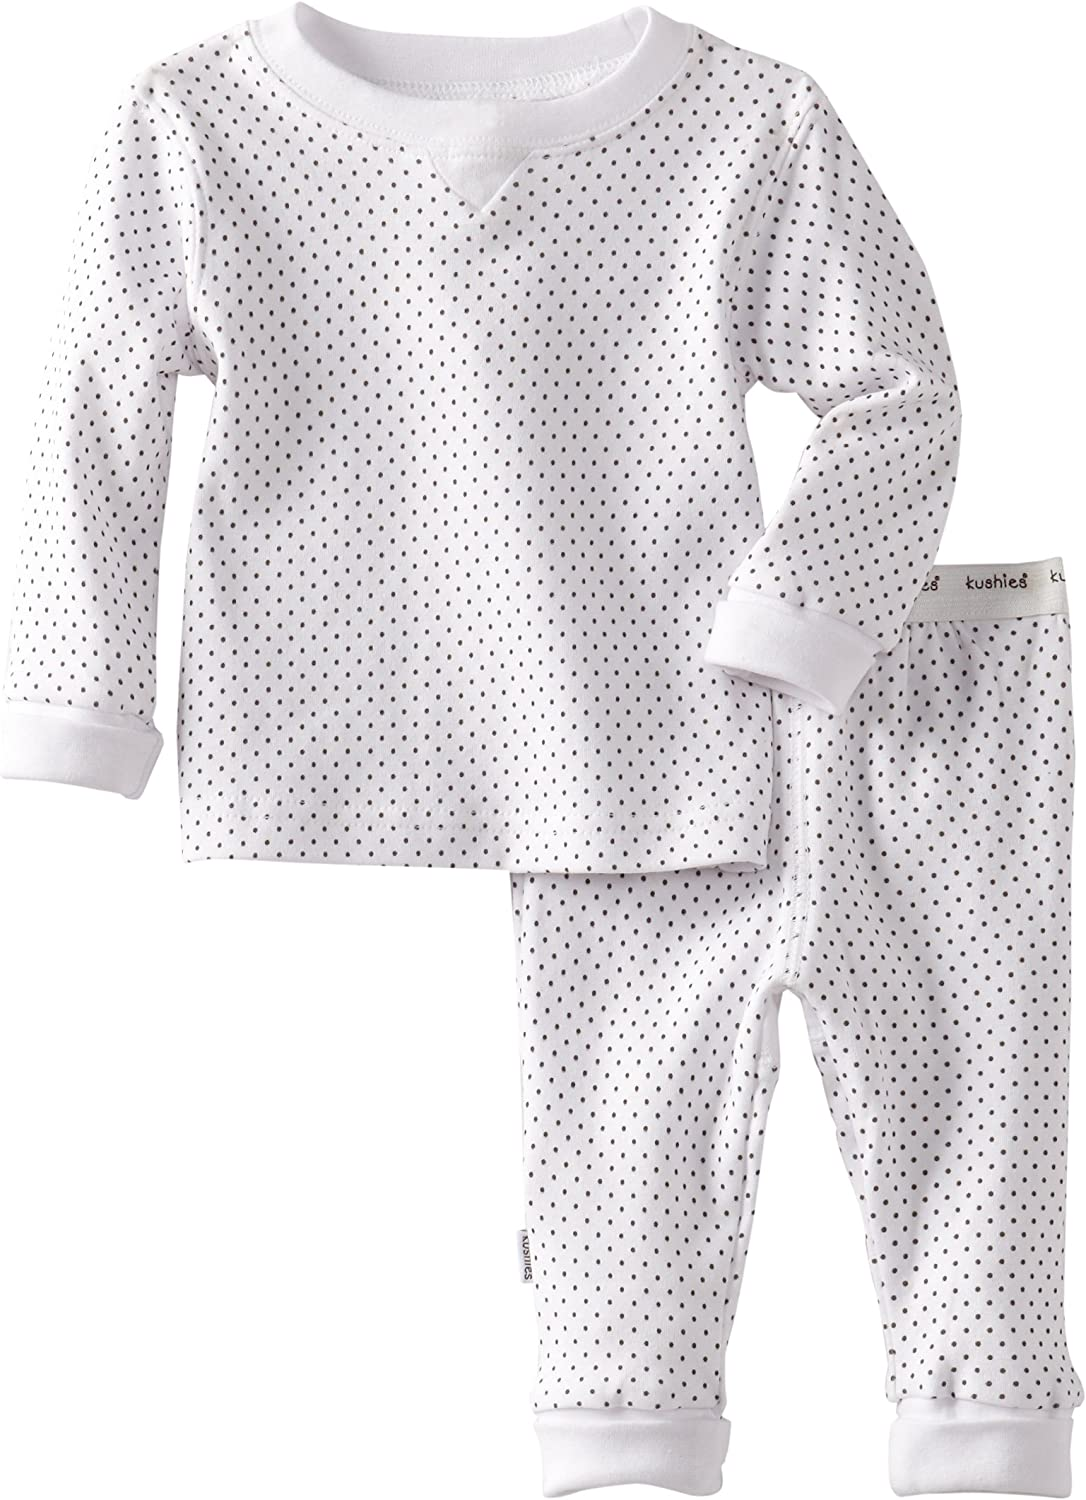 Green Stripe Kushies Baby Everyday Layette 2-Piece Set 12 Months 1 Pack